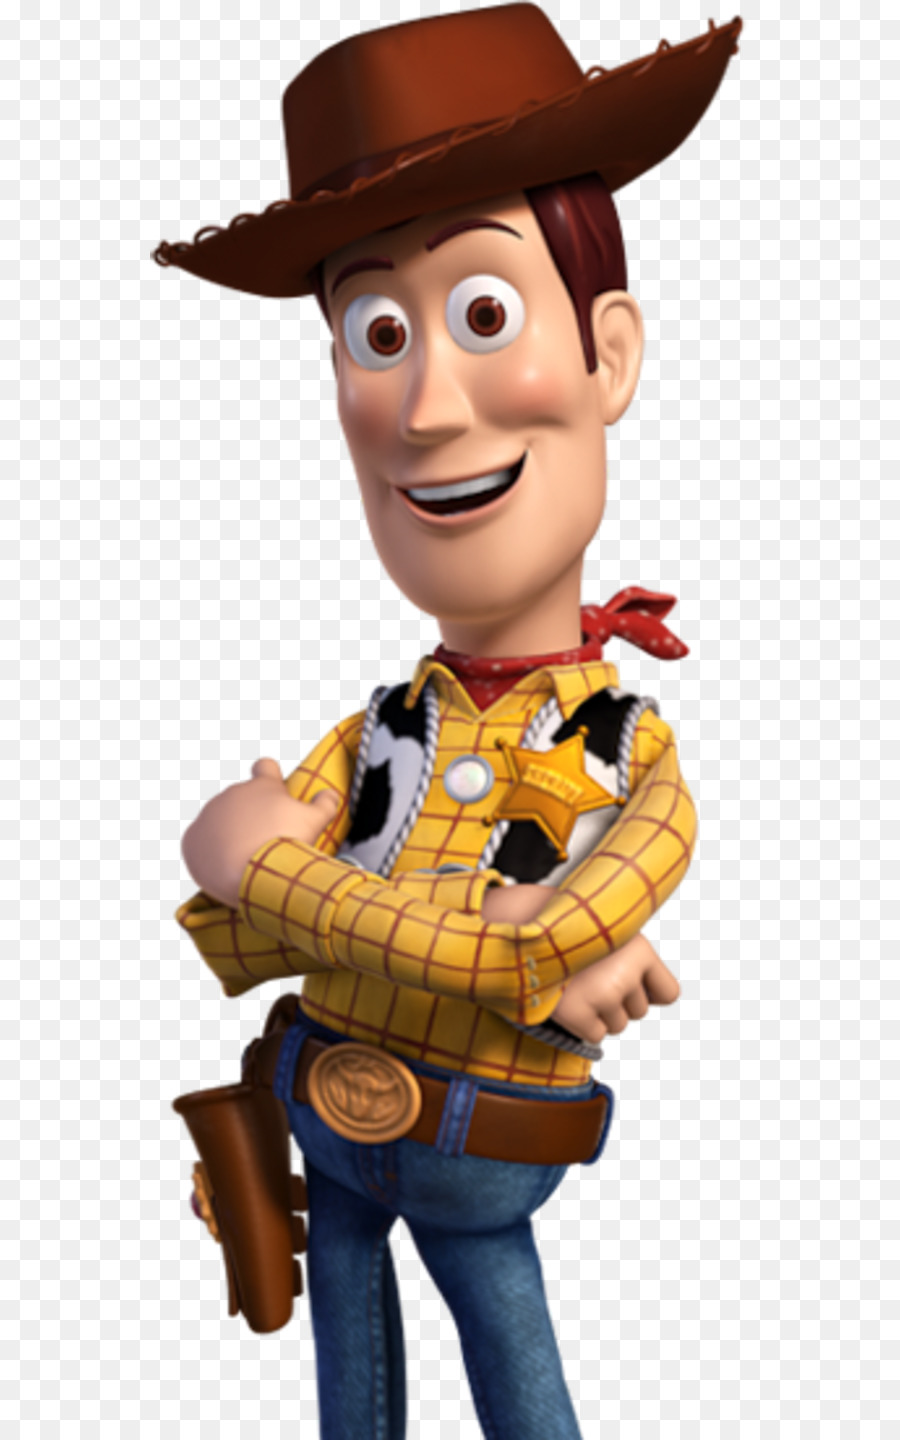 Cute Horse Wallpaper Cartoon Sheriff Woody Buzz Lightyear Jessie Toy Story Andy Story